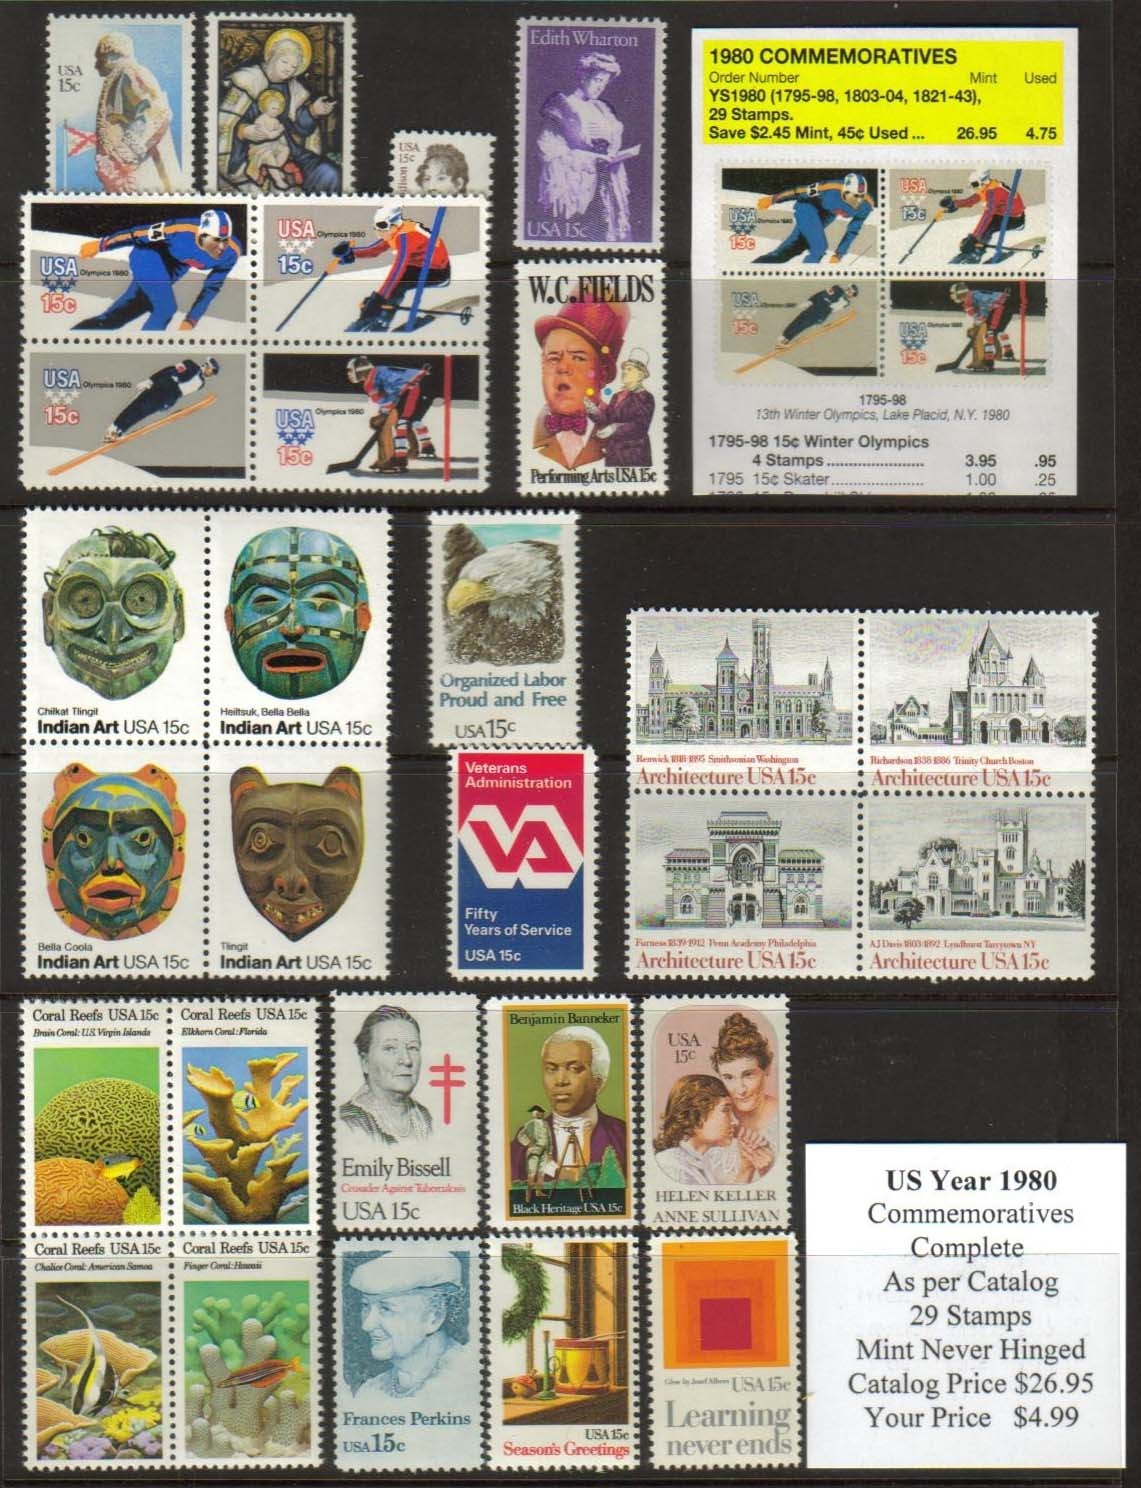 1980 COMMEMORATIVES, 29 STAMPS